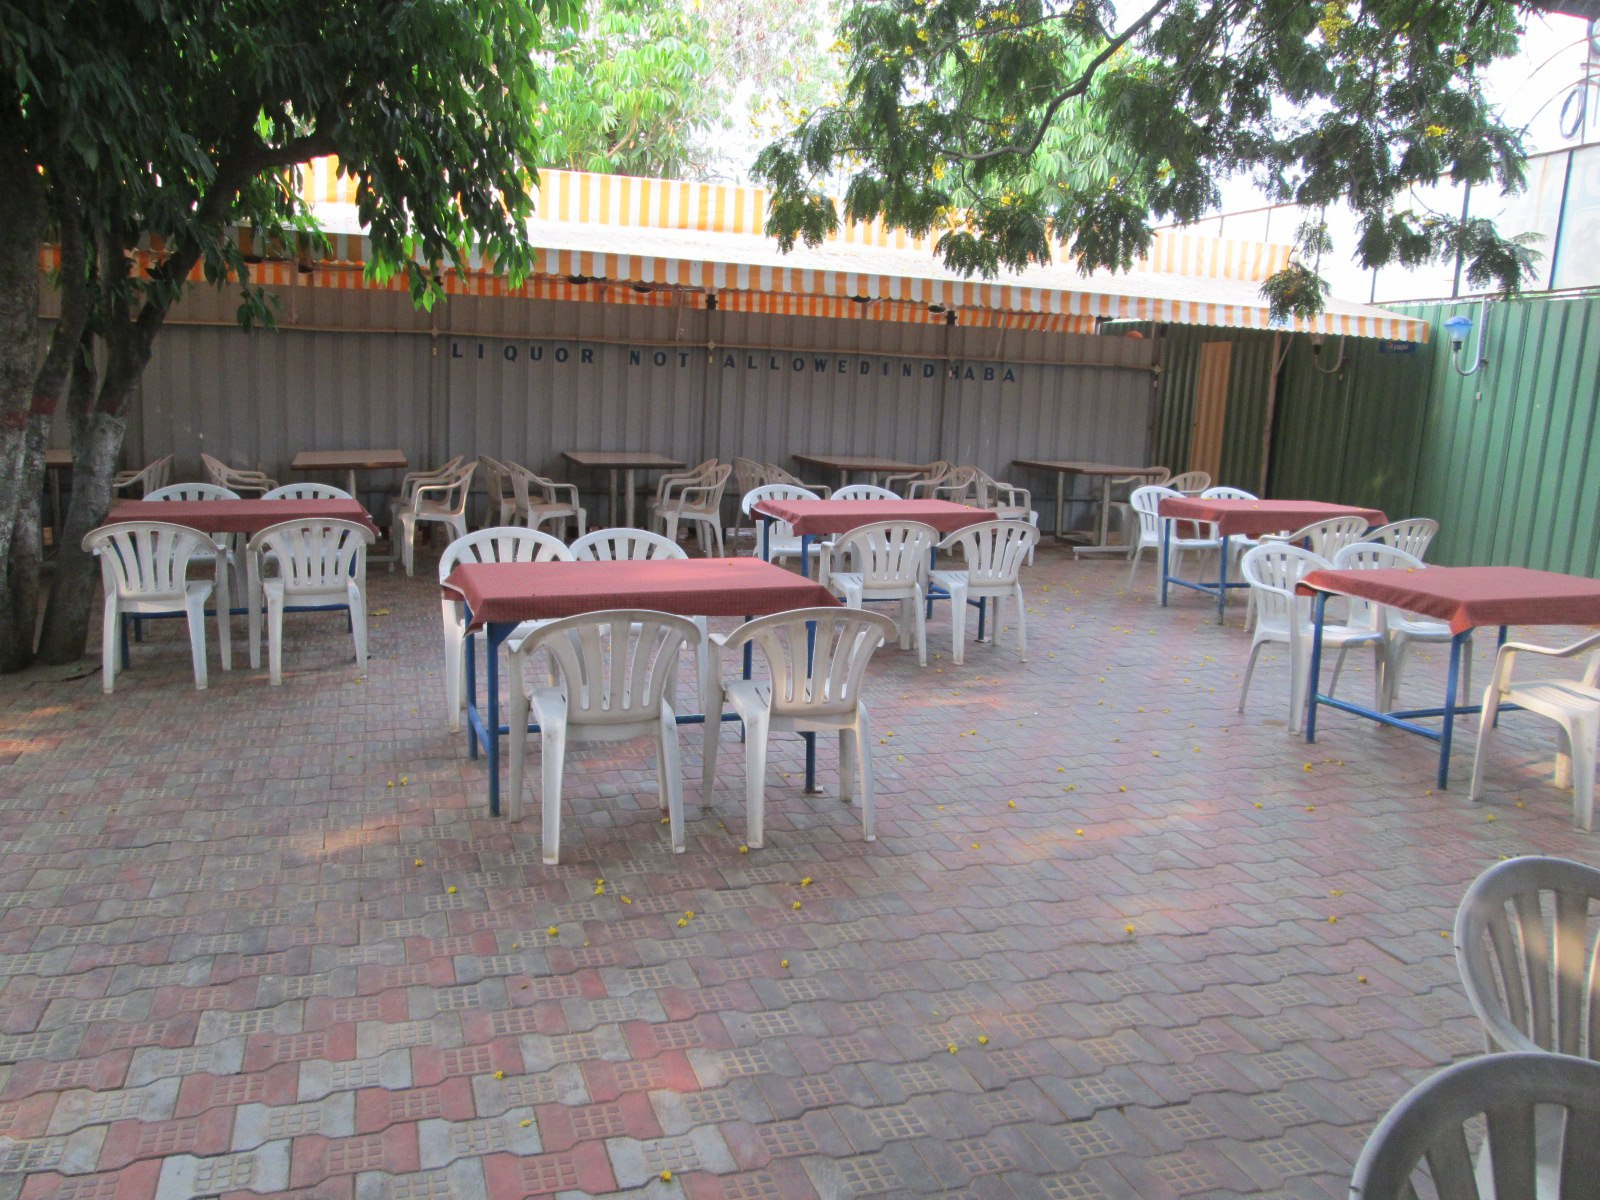 Dhabha Joint outskirts of Hyderabad_things to do in Hyderabad